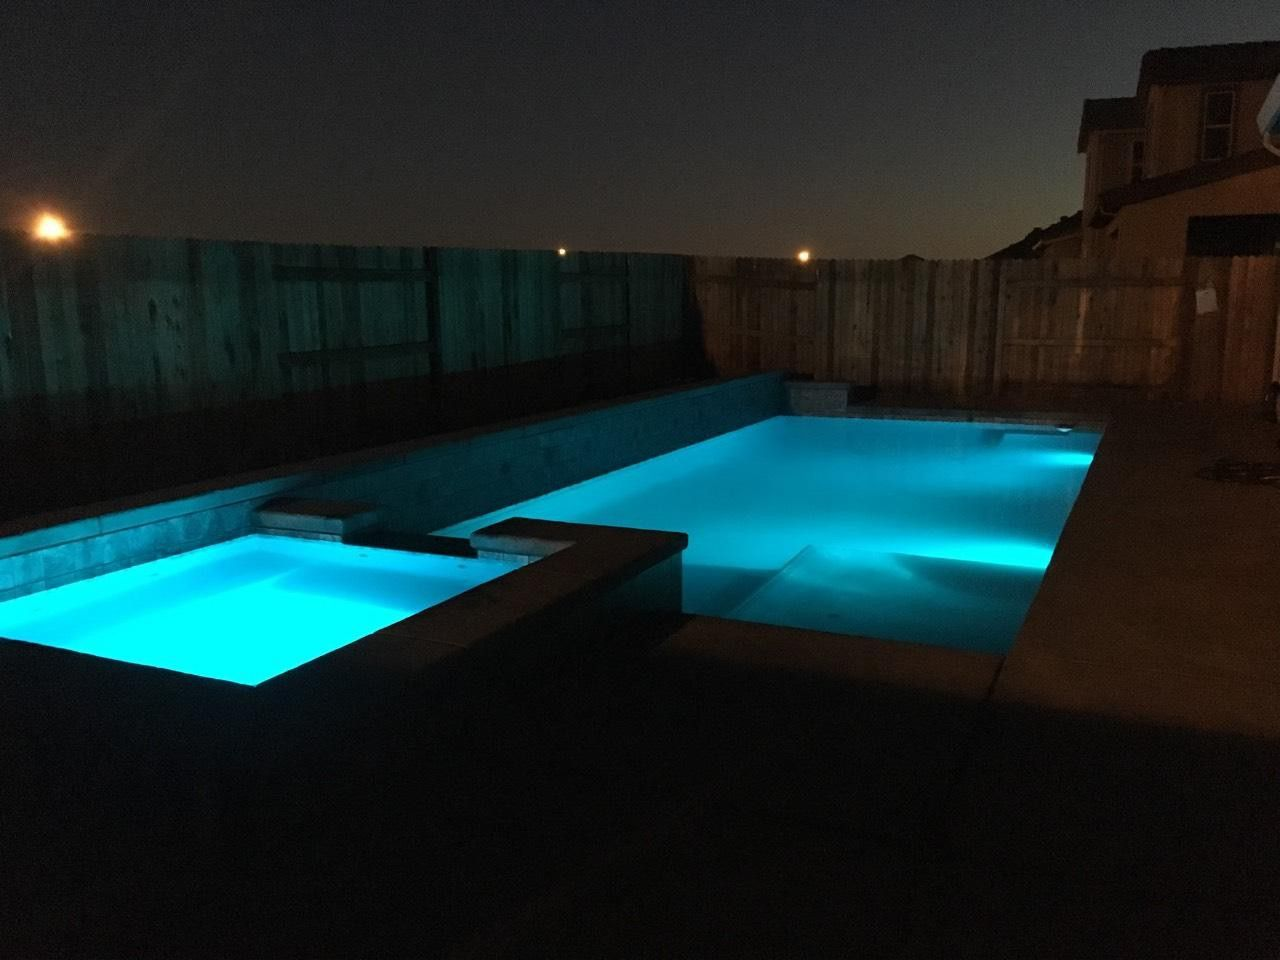 Swimming Pool And Spa With Color Led Lights At Night